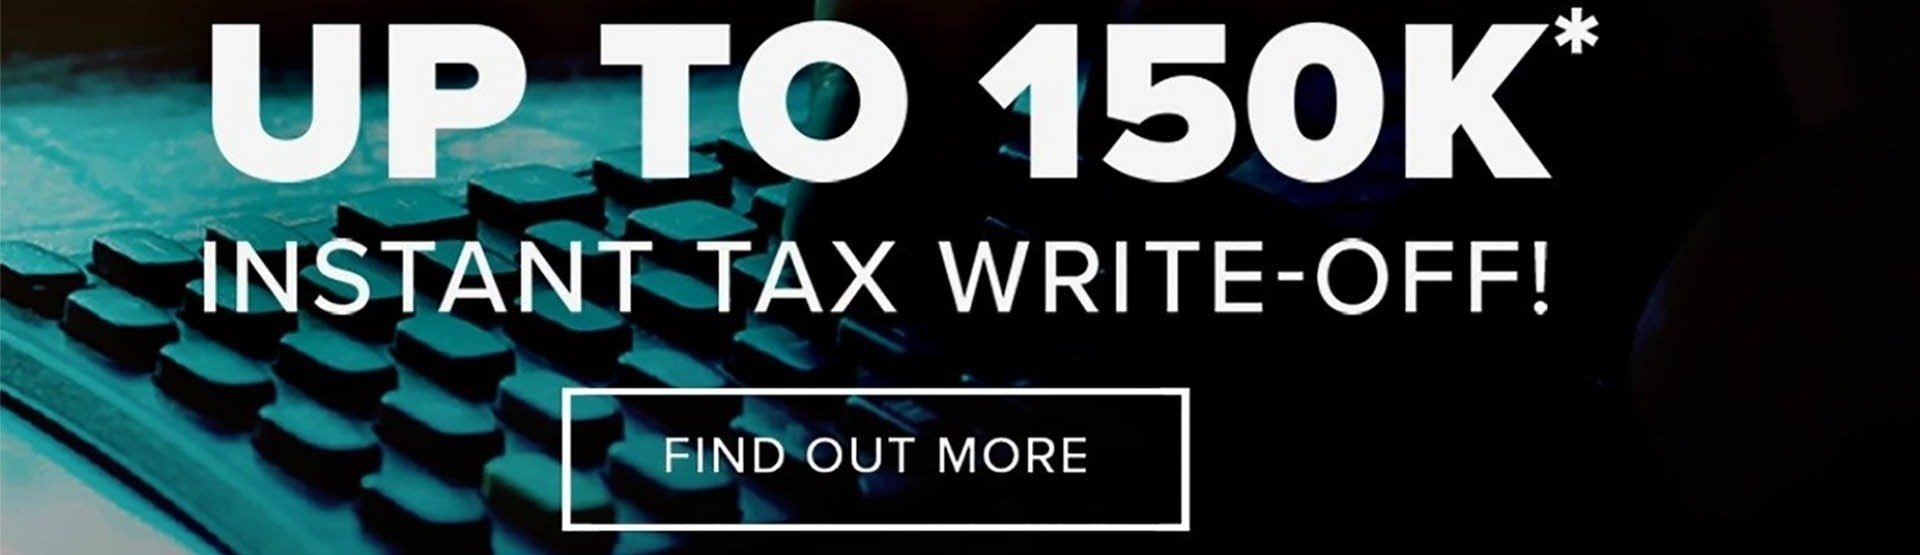 Tax Write-Off